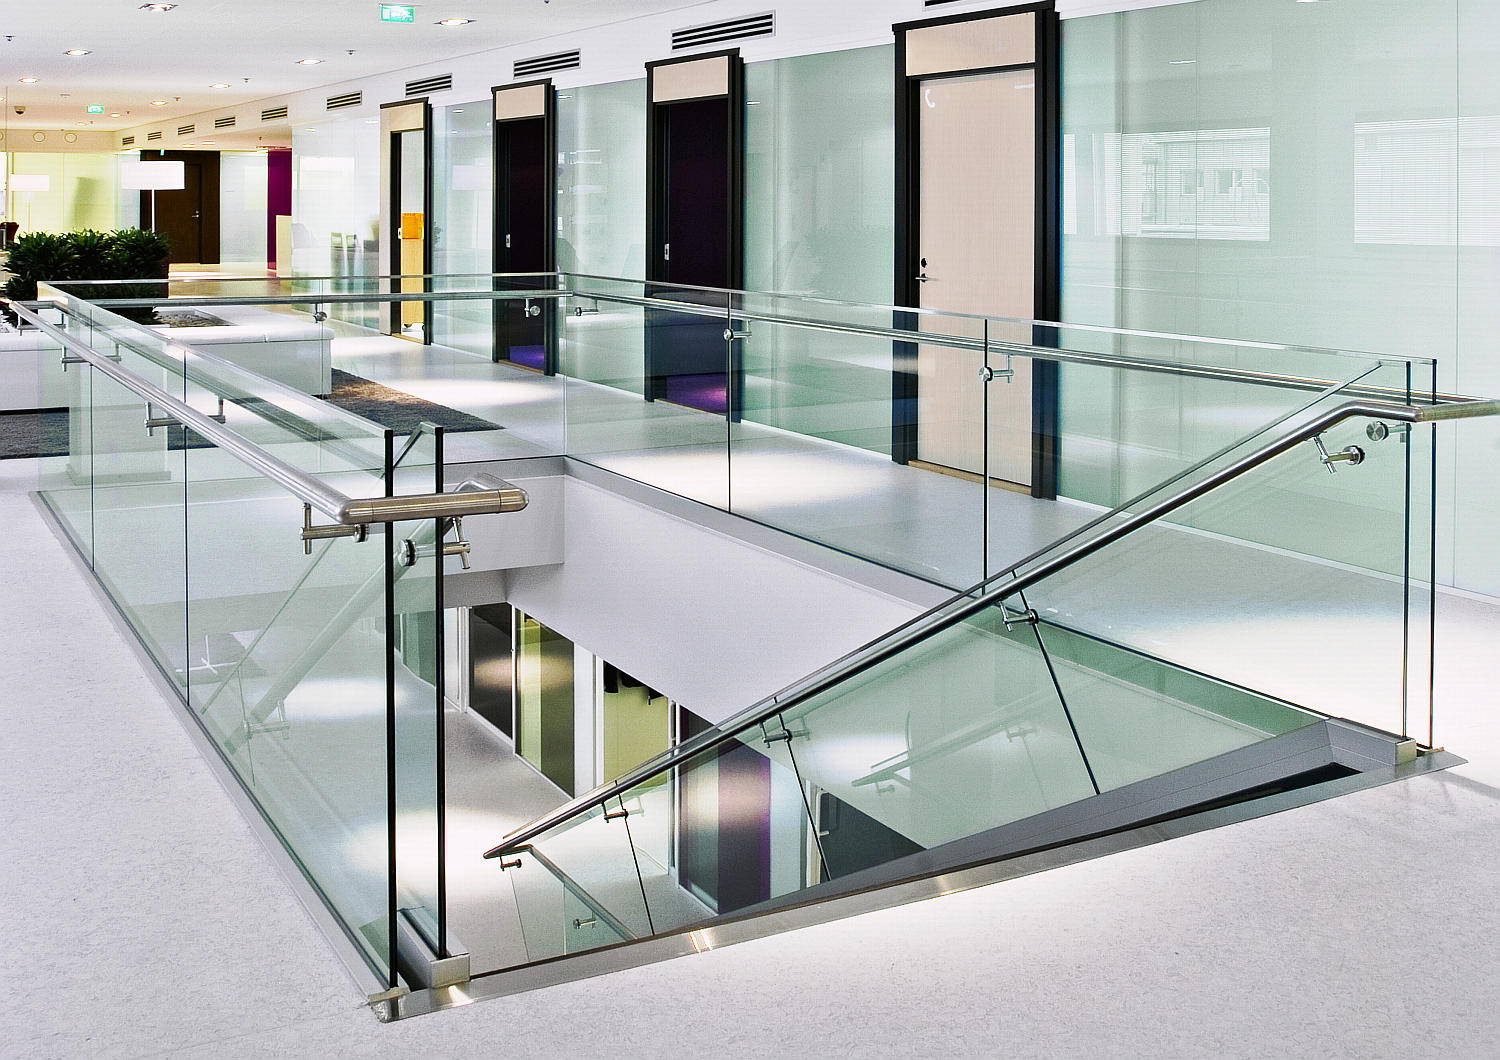 Glass handrails with metal railing